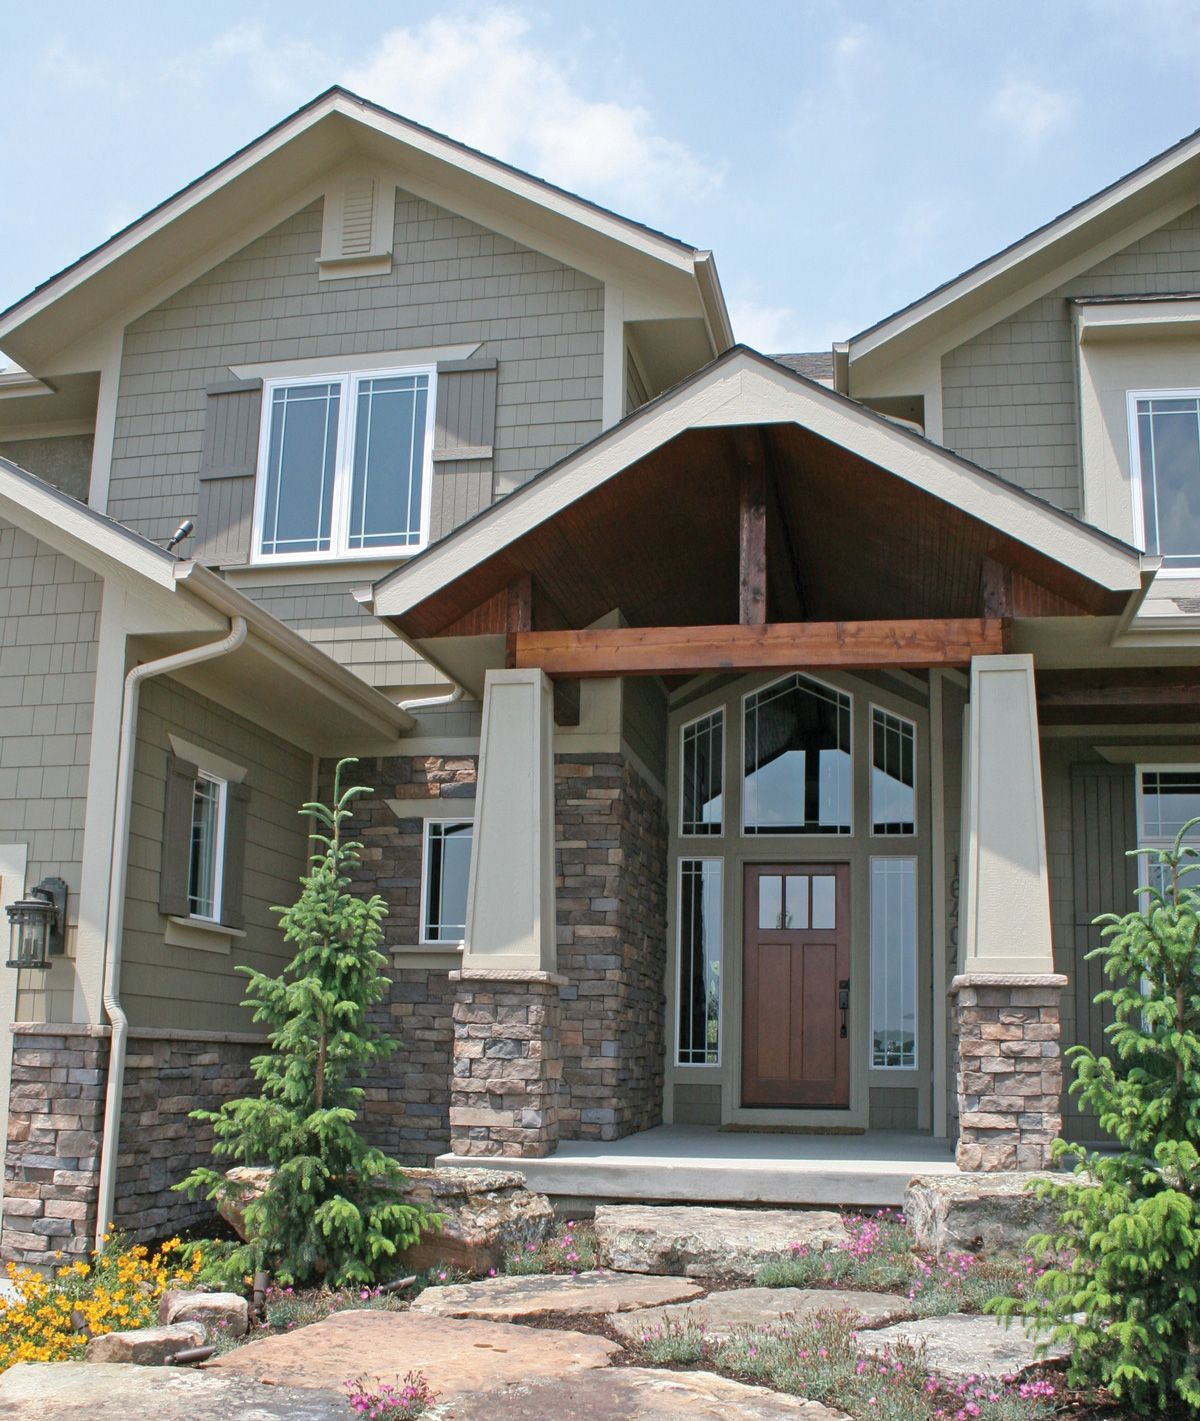 Rock Siding Ideas: Craftsman-style, Stone Veneers, Columns, Windows